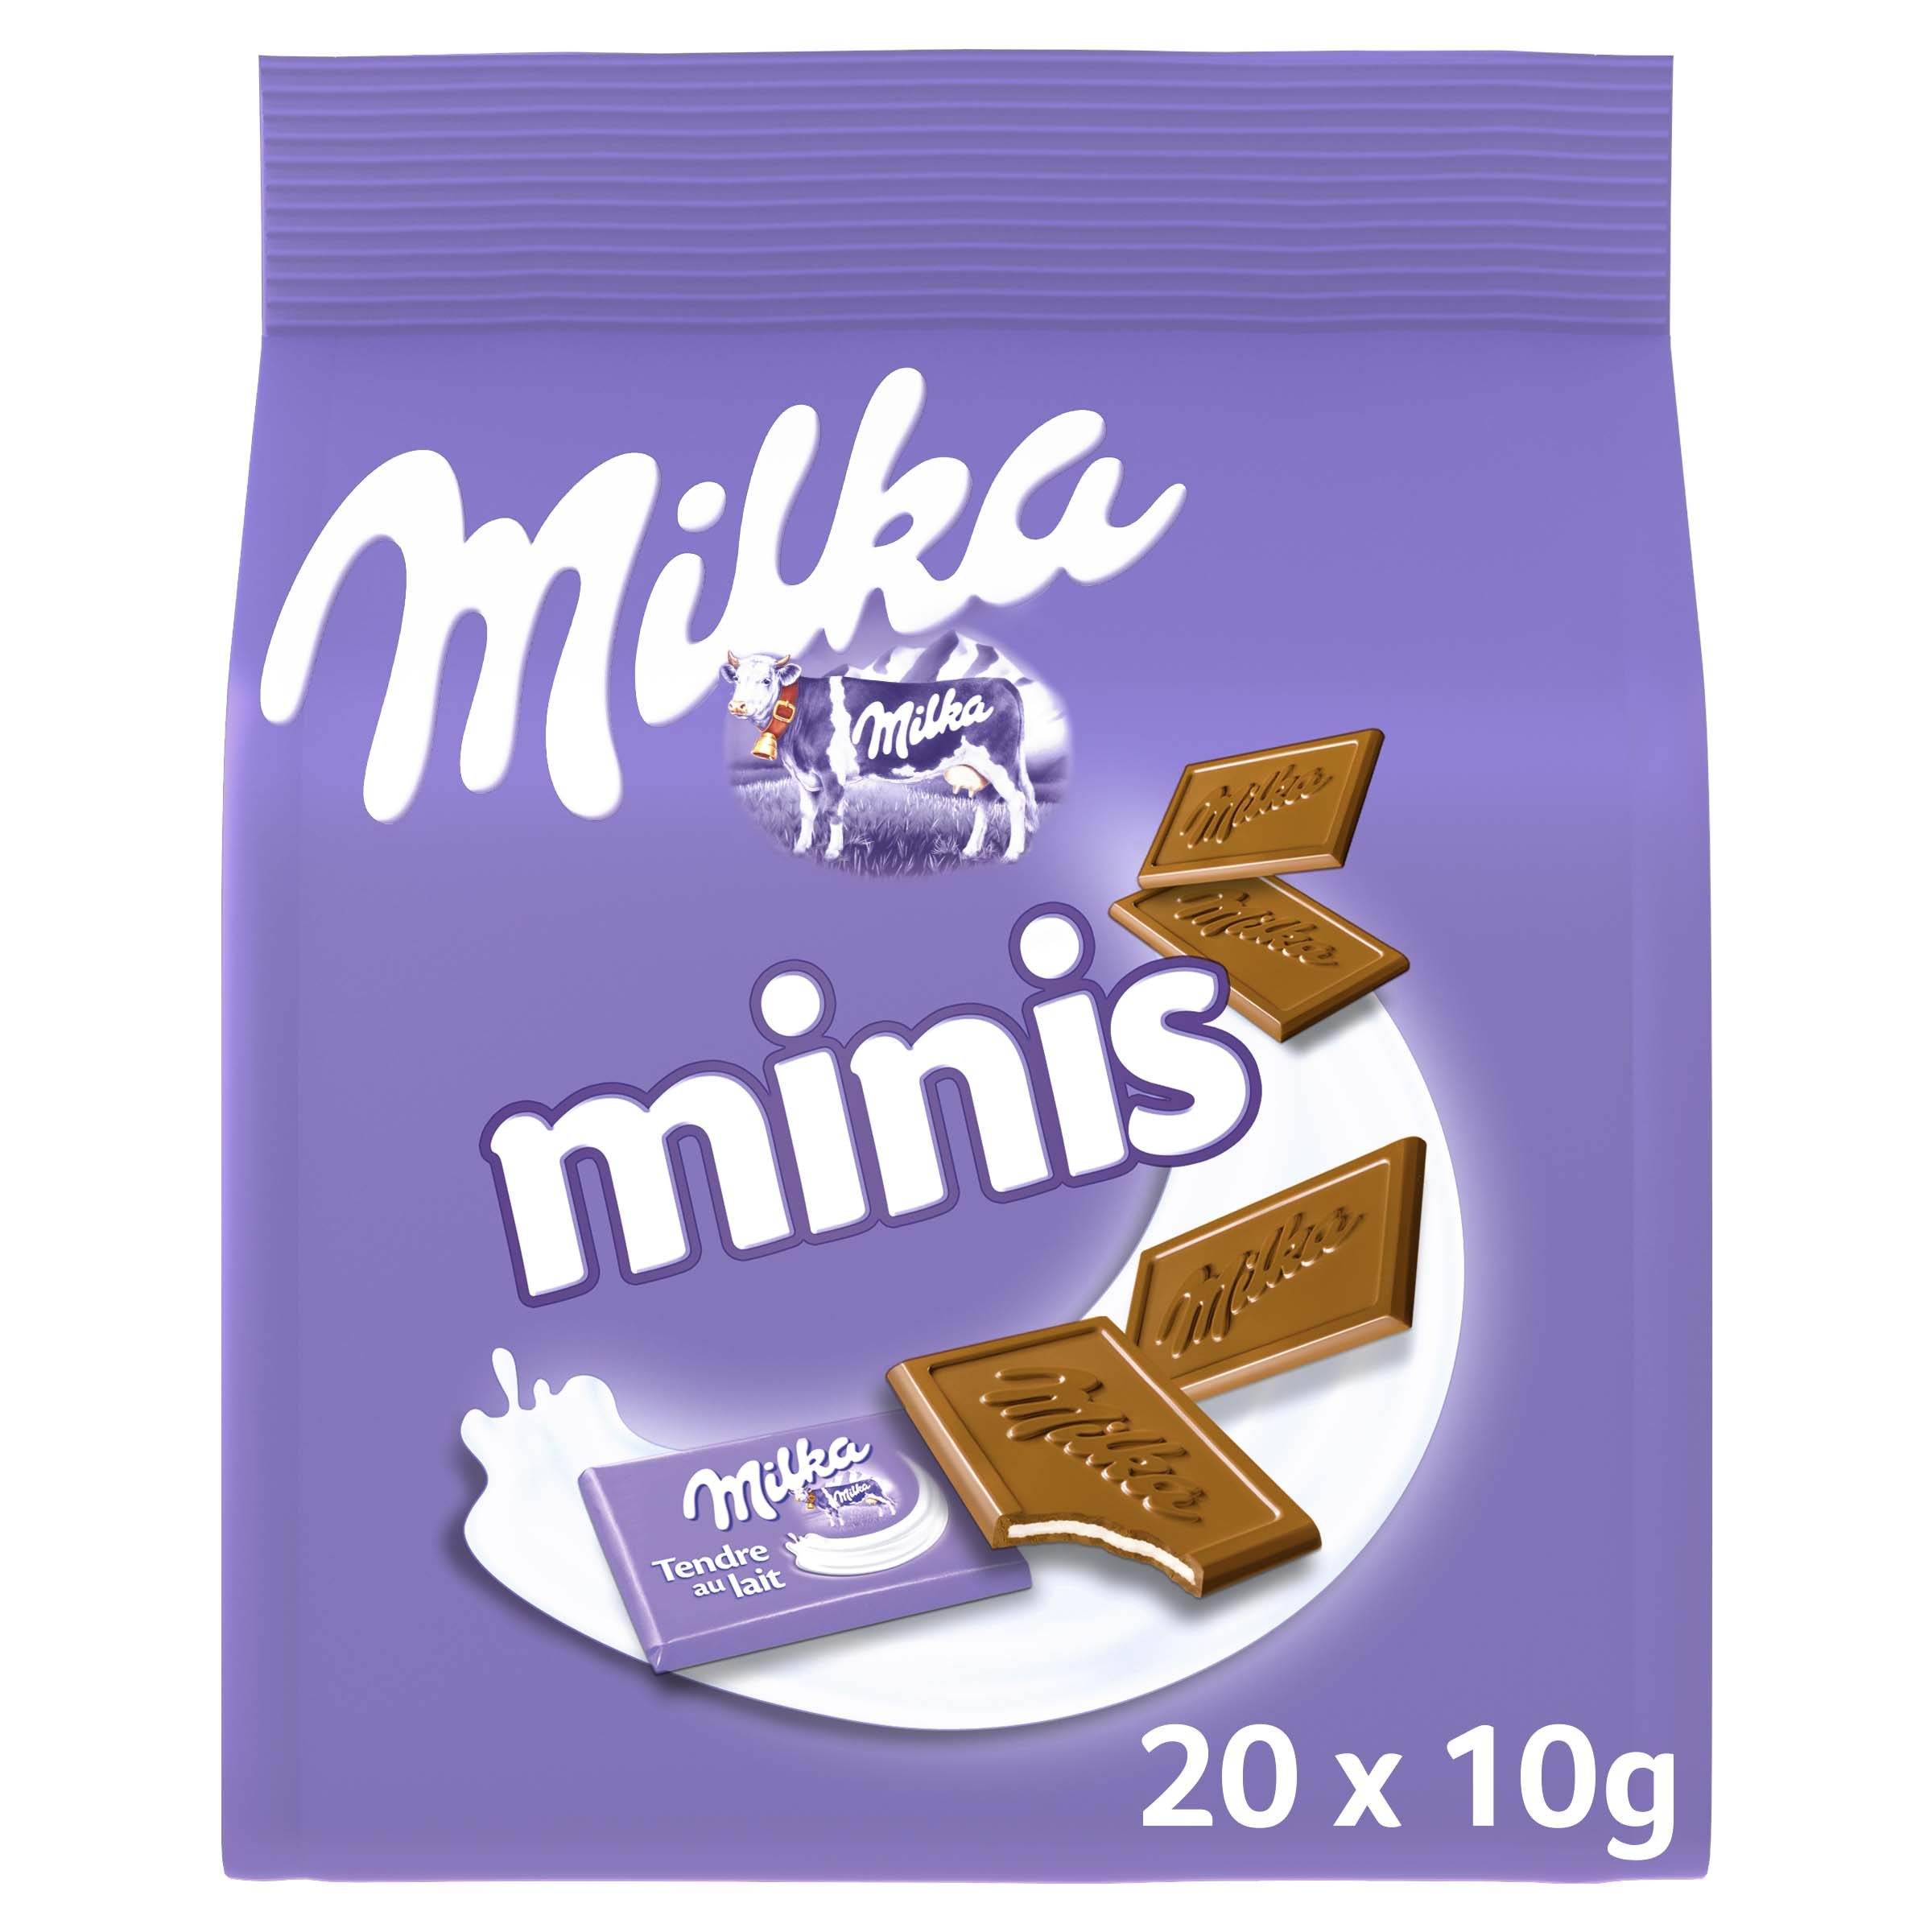 Mini tablette Milka au lait (20 x 10 g)